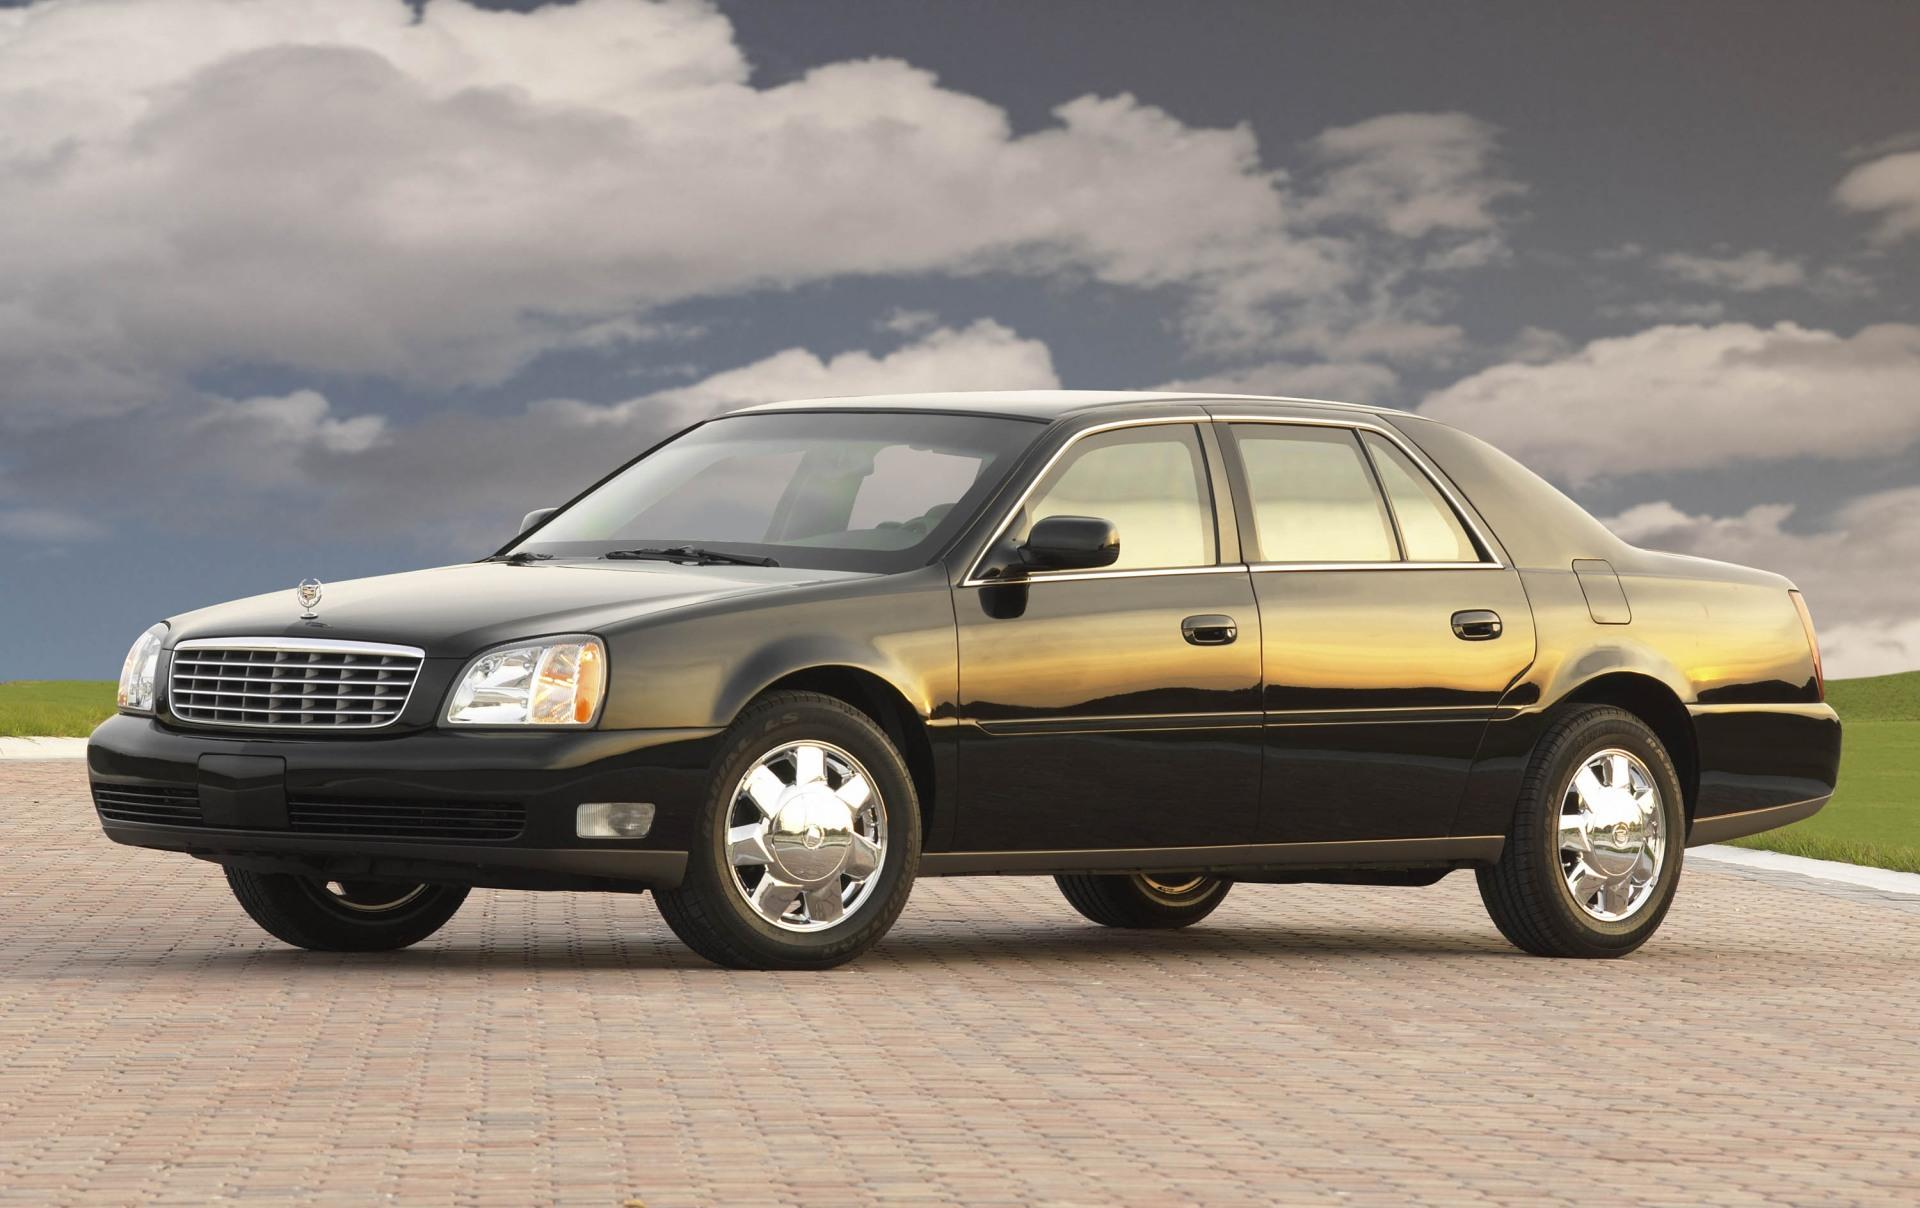 2004 cadillac deville pictures history value research. Cars Review. Best American Auto & Cars Review